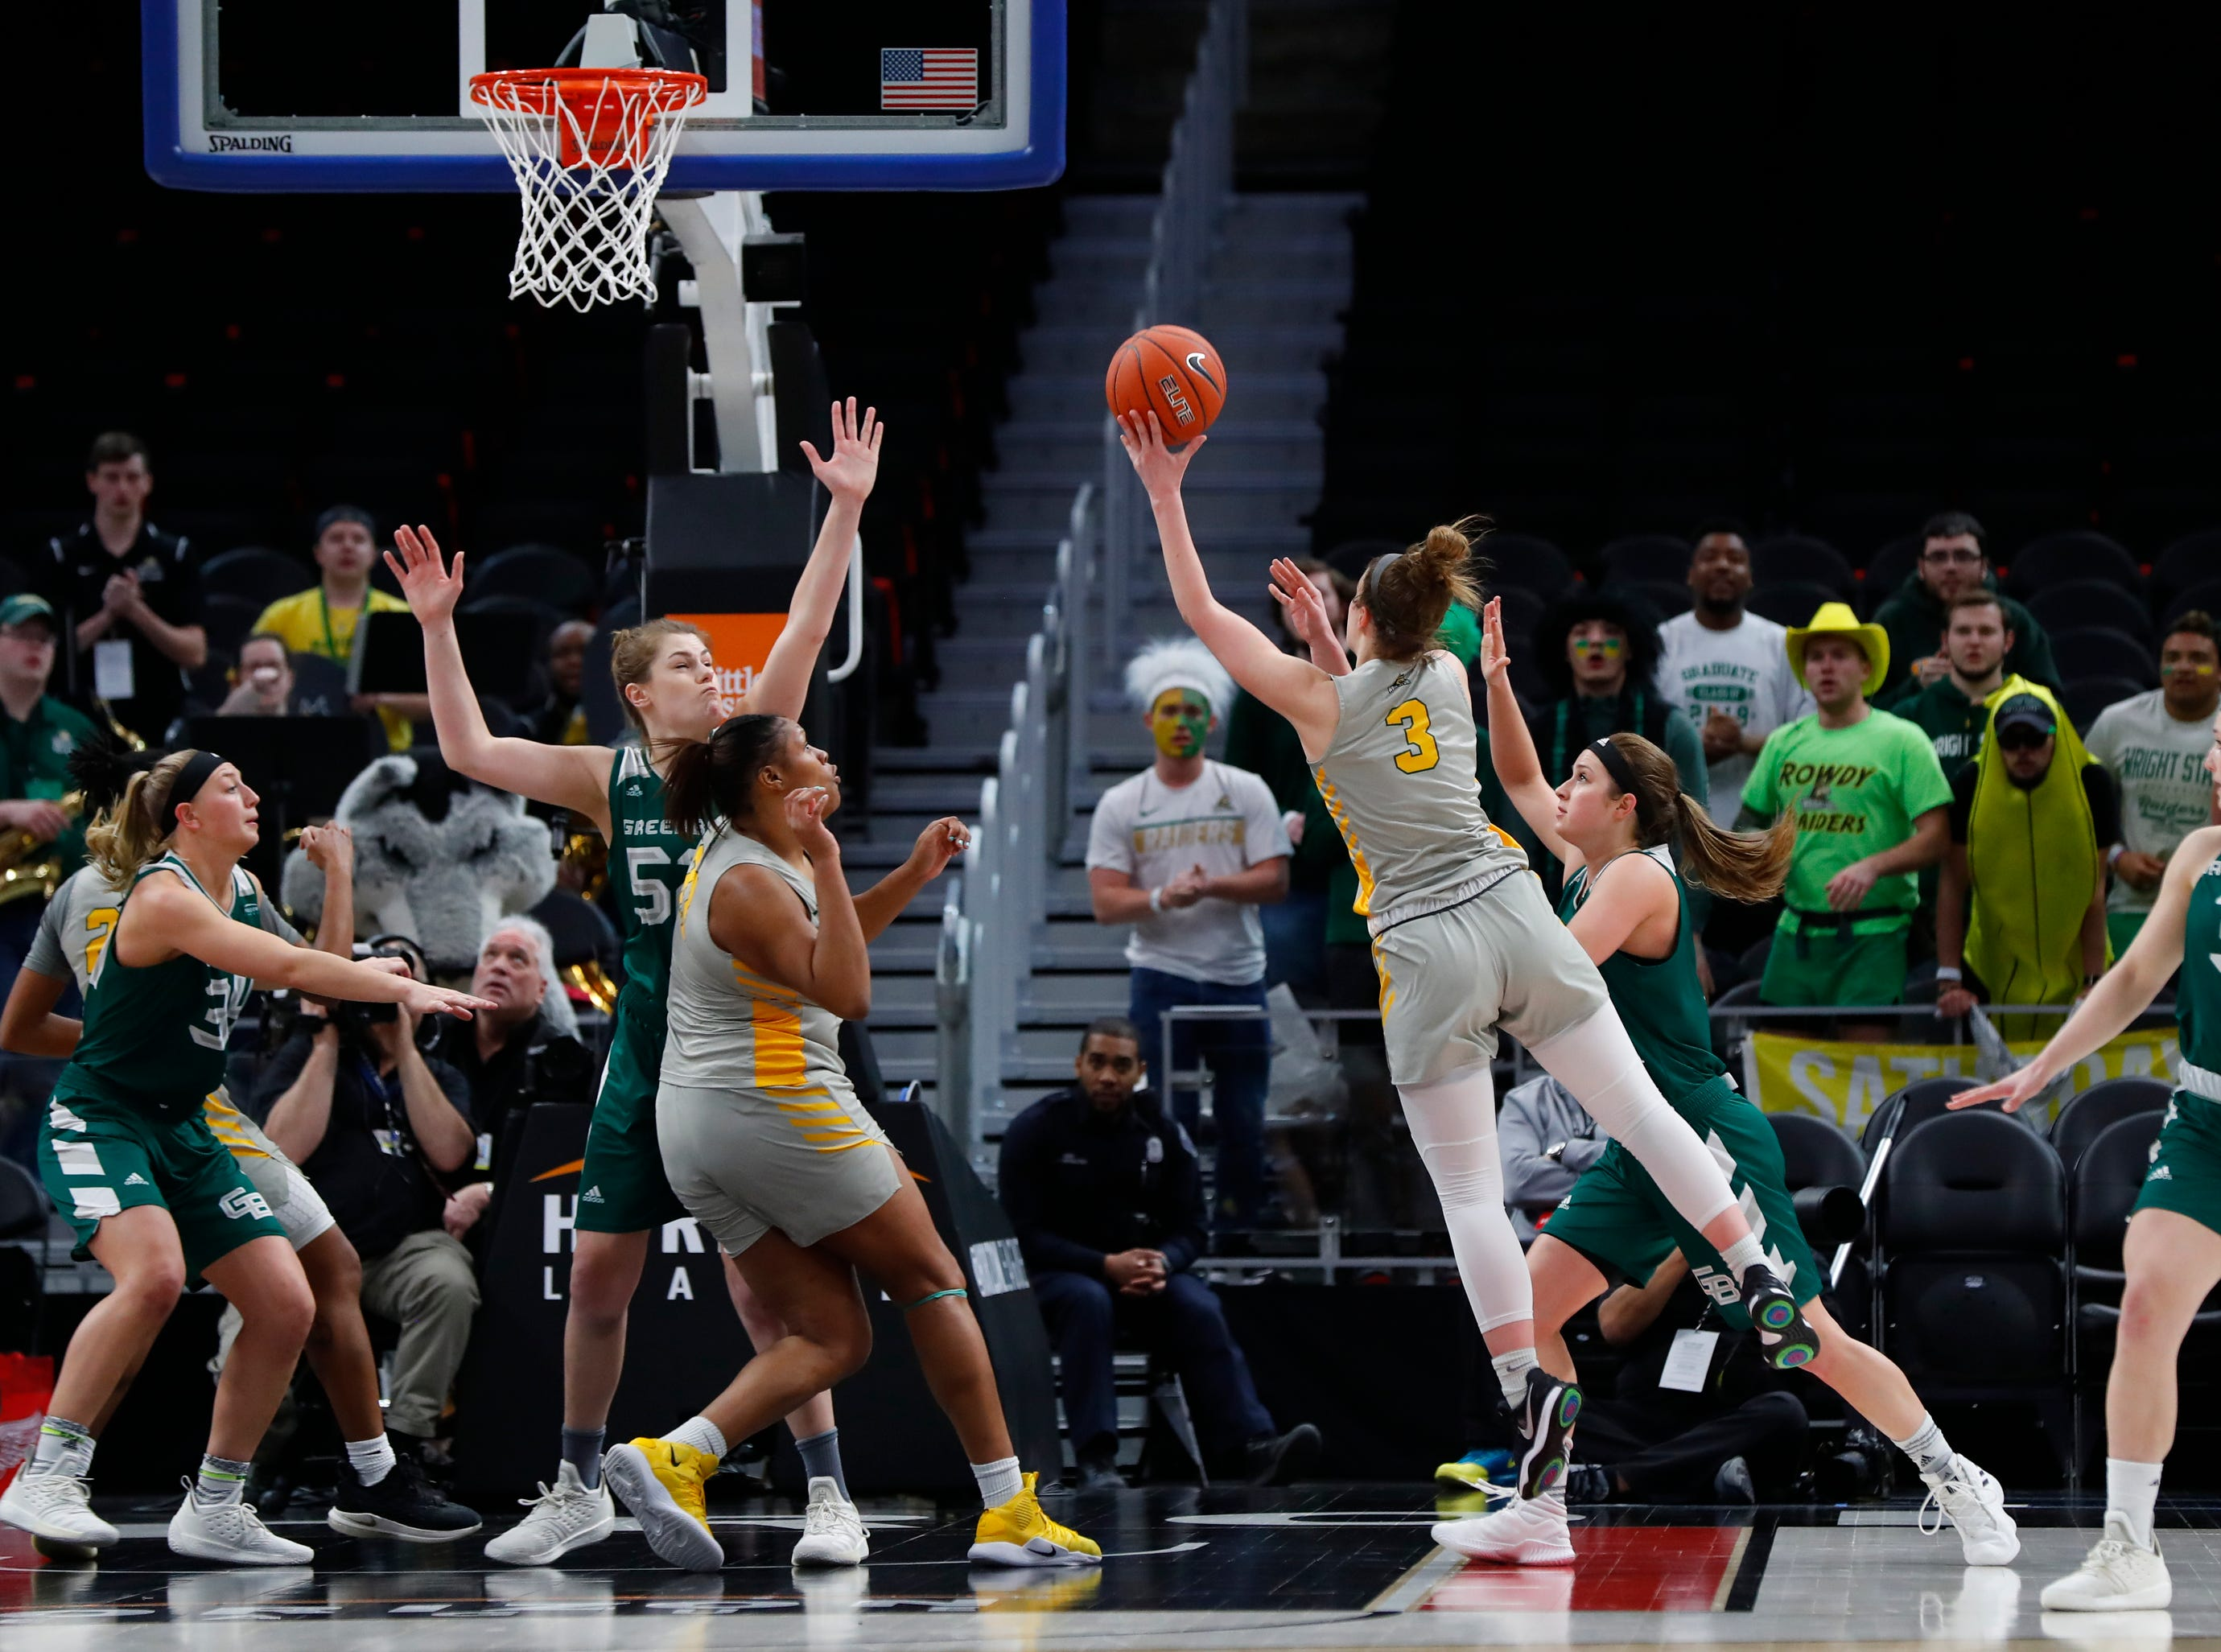 Wright State guard Emily Vogelpohl (3) drives to the basket against the Green Bay in the second half.